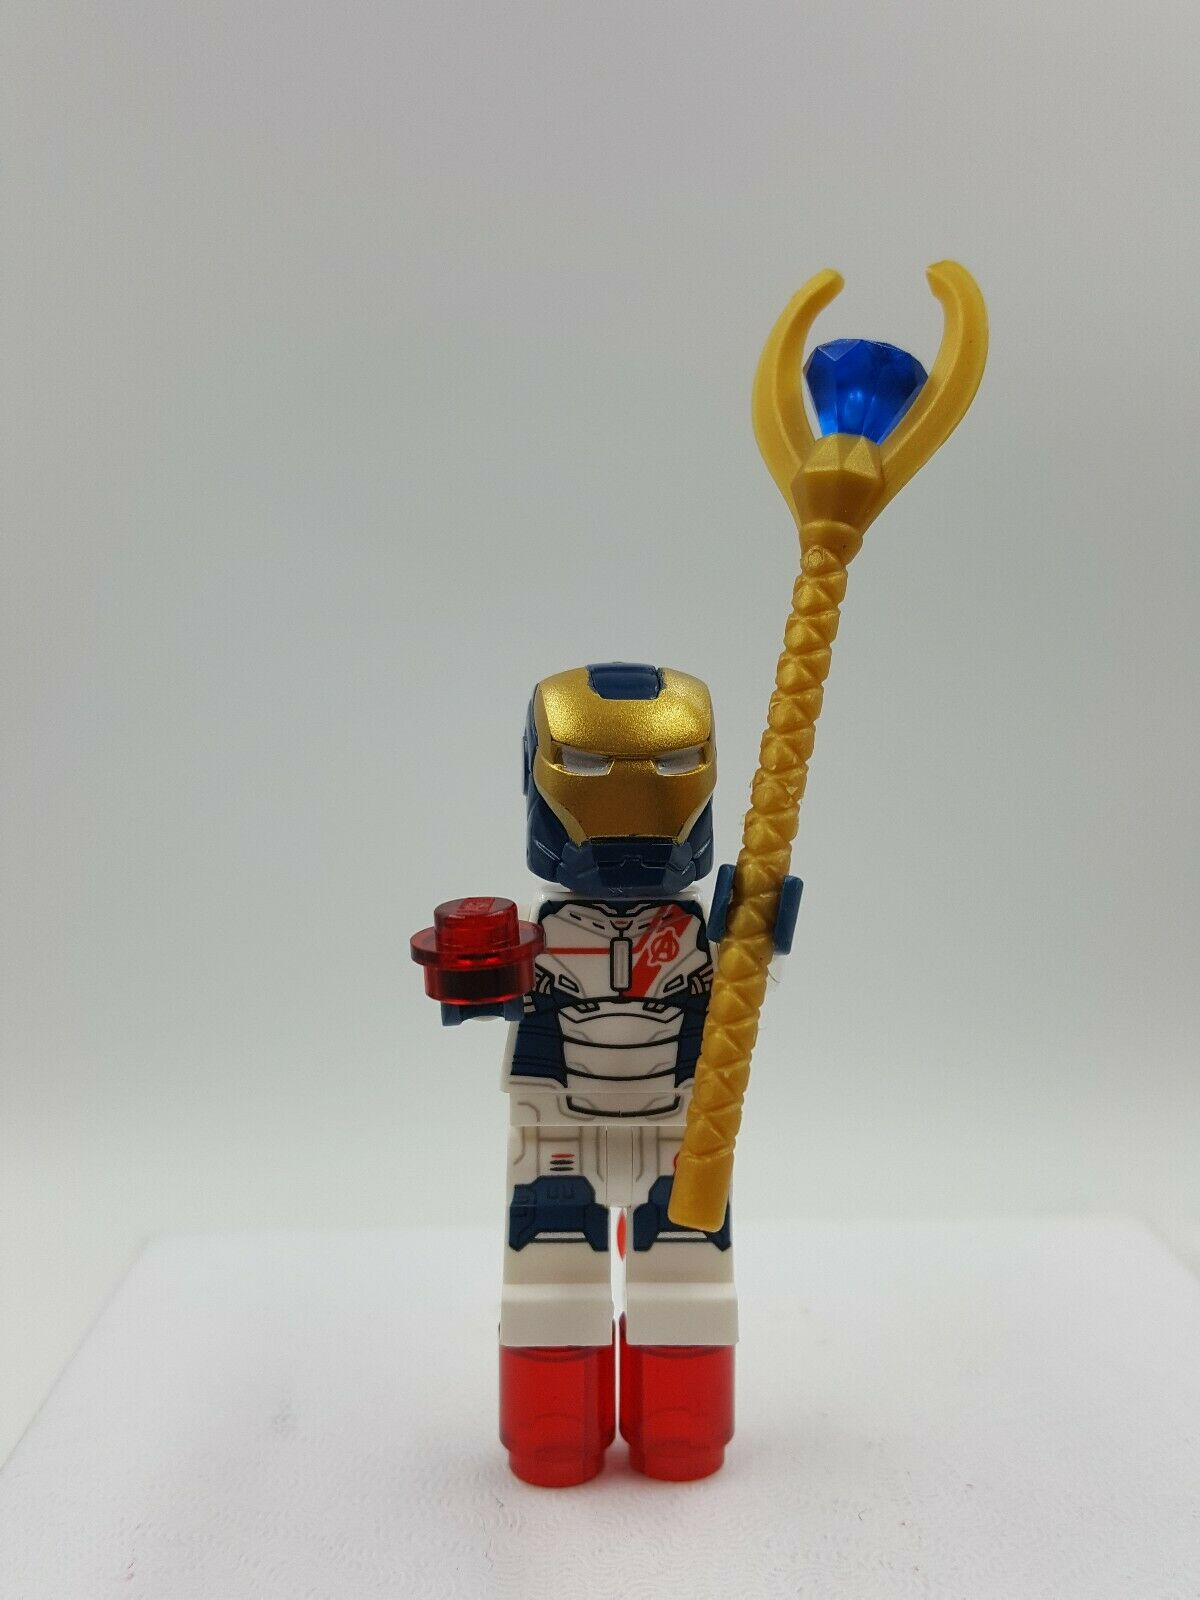 Lego Minifigure Marvel Iron Legion Avengers Tower 76038 sh168 1